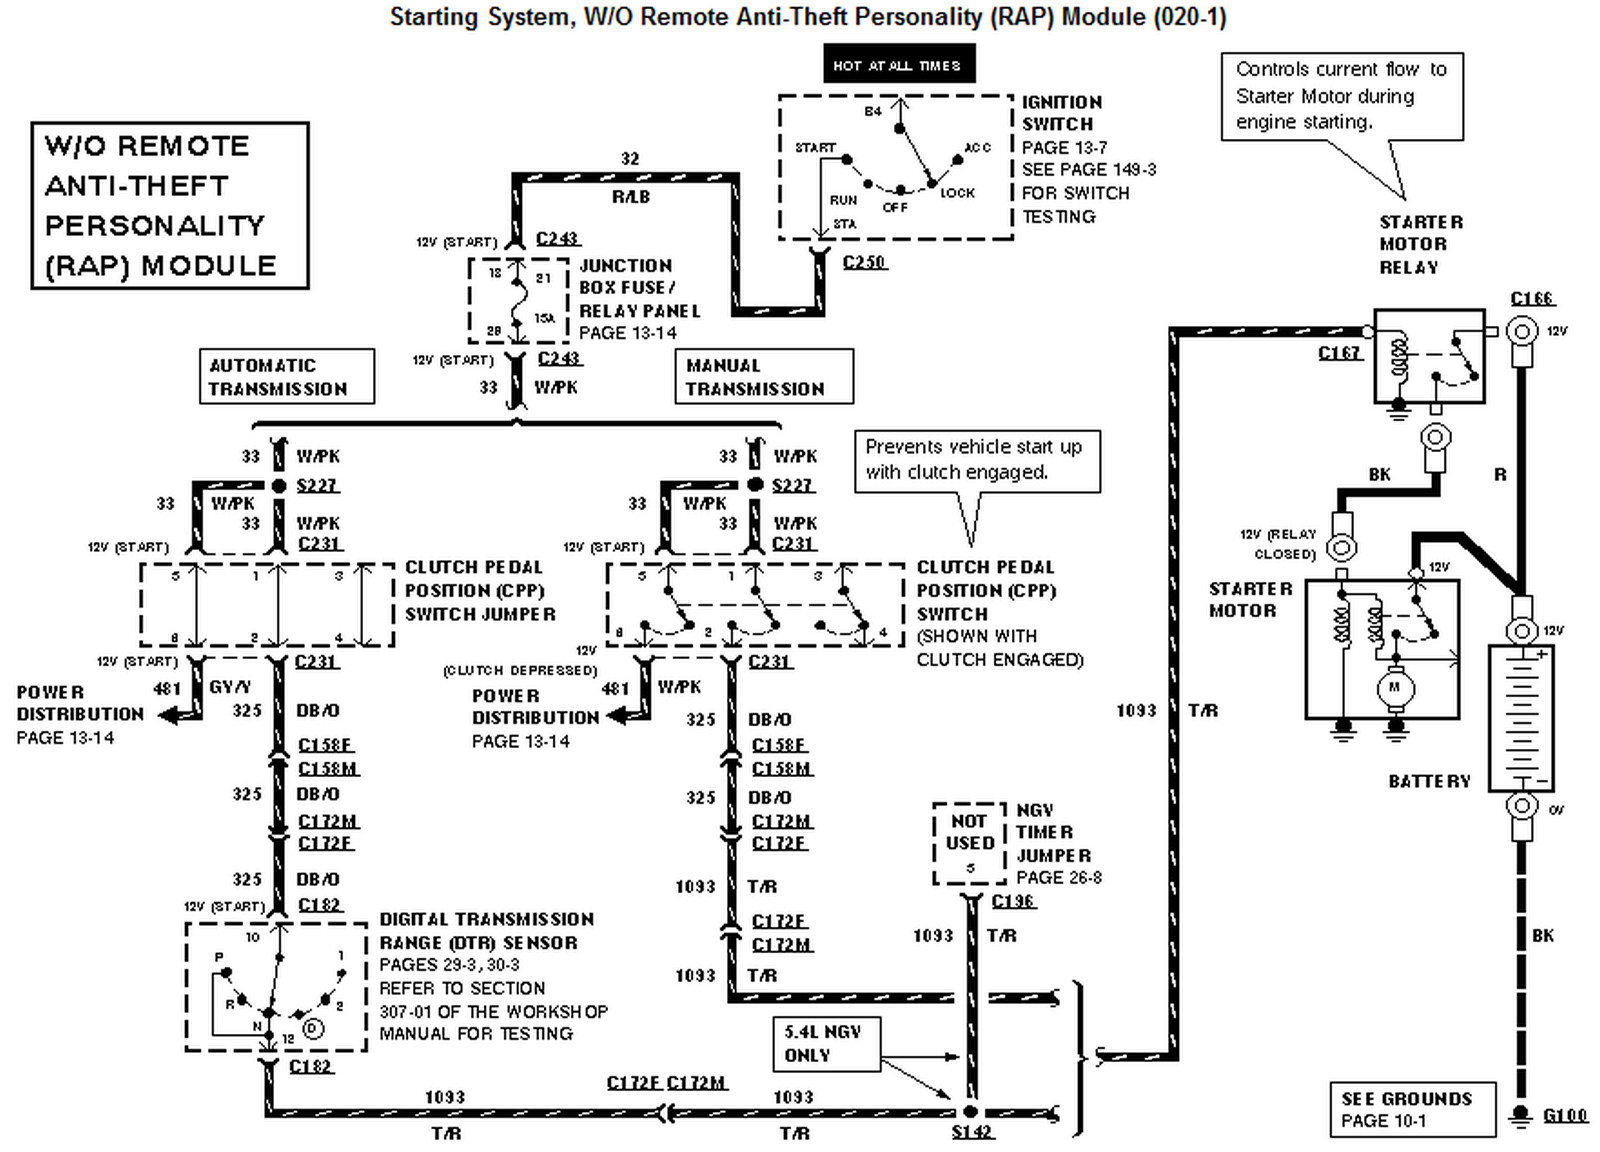 1989 Lowe Pontoon Wiring Diagram 32 Images Diagrams Of 1998 Hurricane Boat 2010 03 26 003202 98 F 150 Ignition Switch For Switches The Readingrat Net Sun Tracker